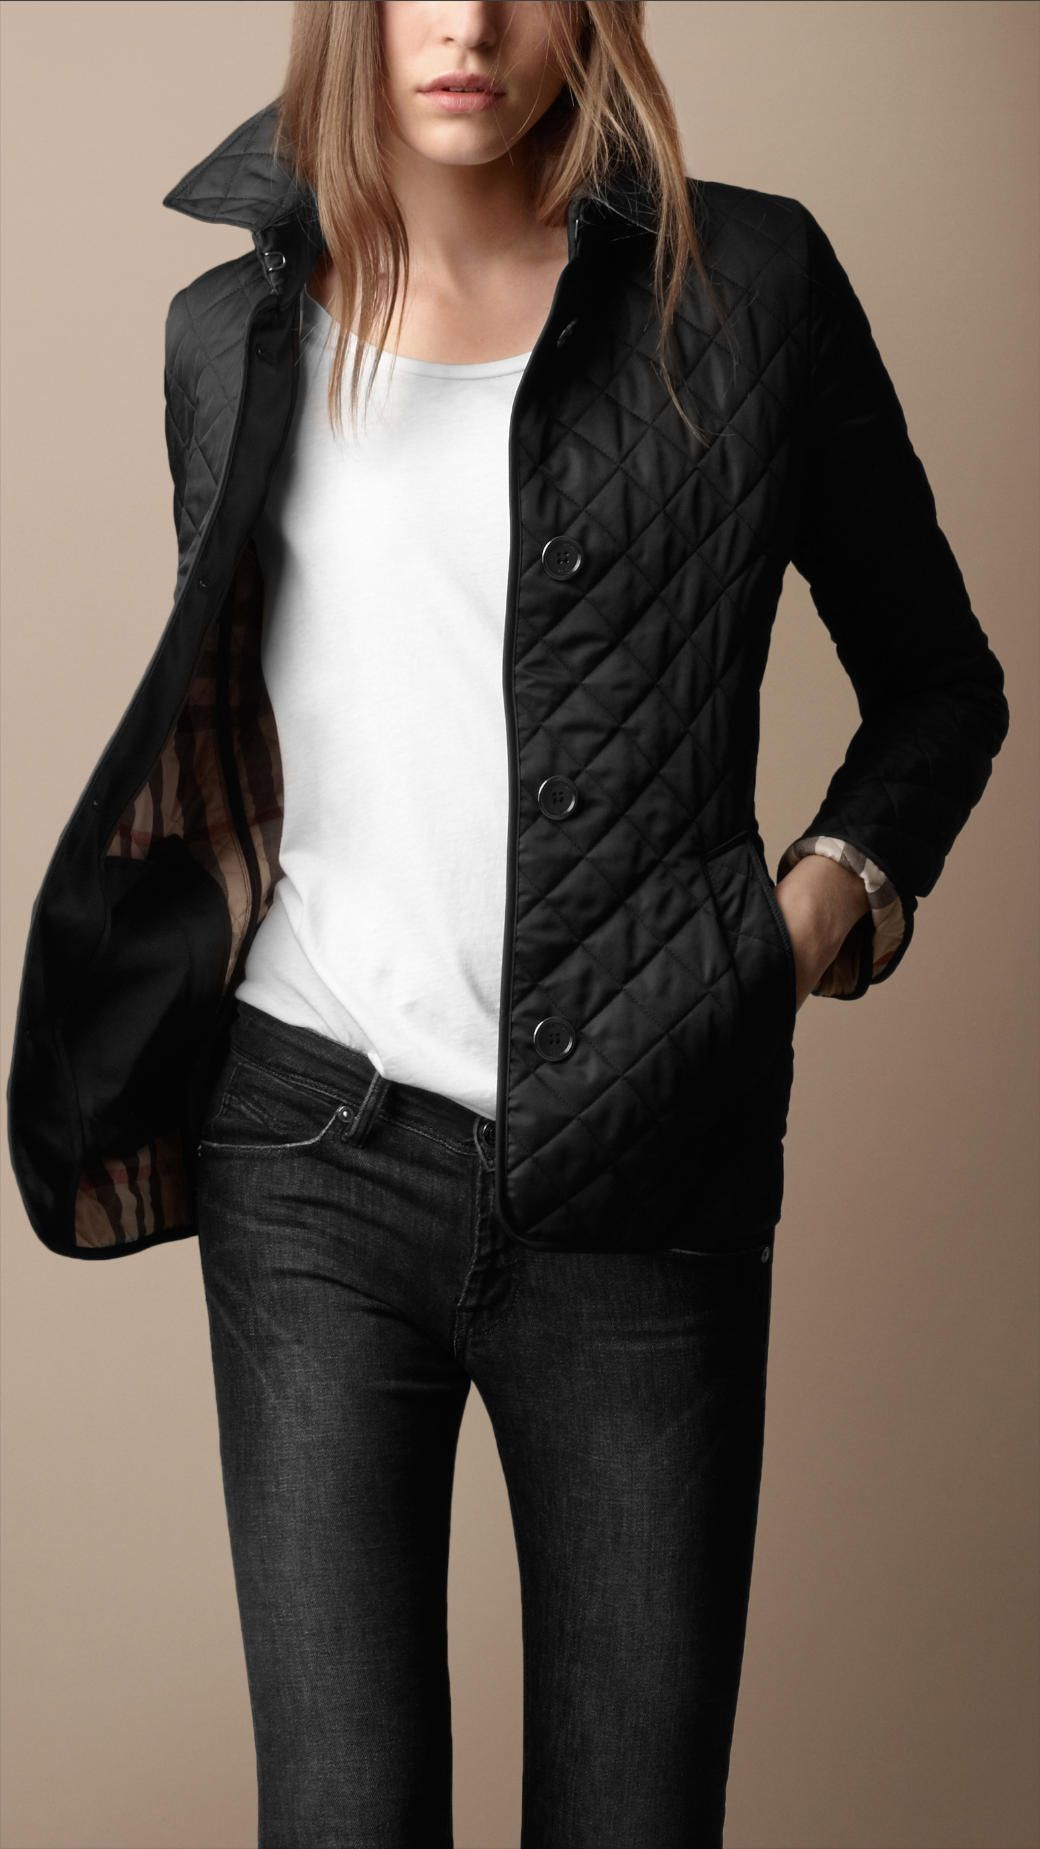 Burberry Cinched Waist Quilted Jacket With Images Black Quilted Jacket Burberry Quilted Jacket Quilted Jacket